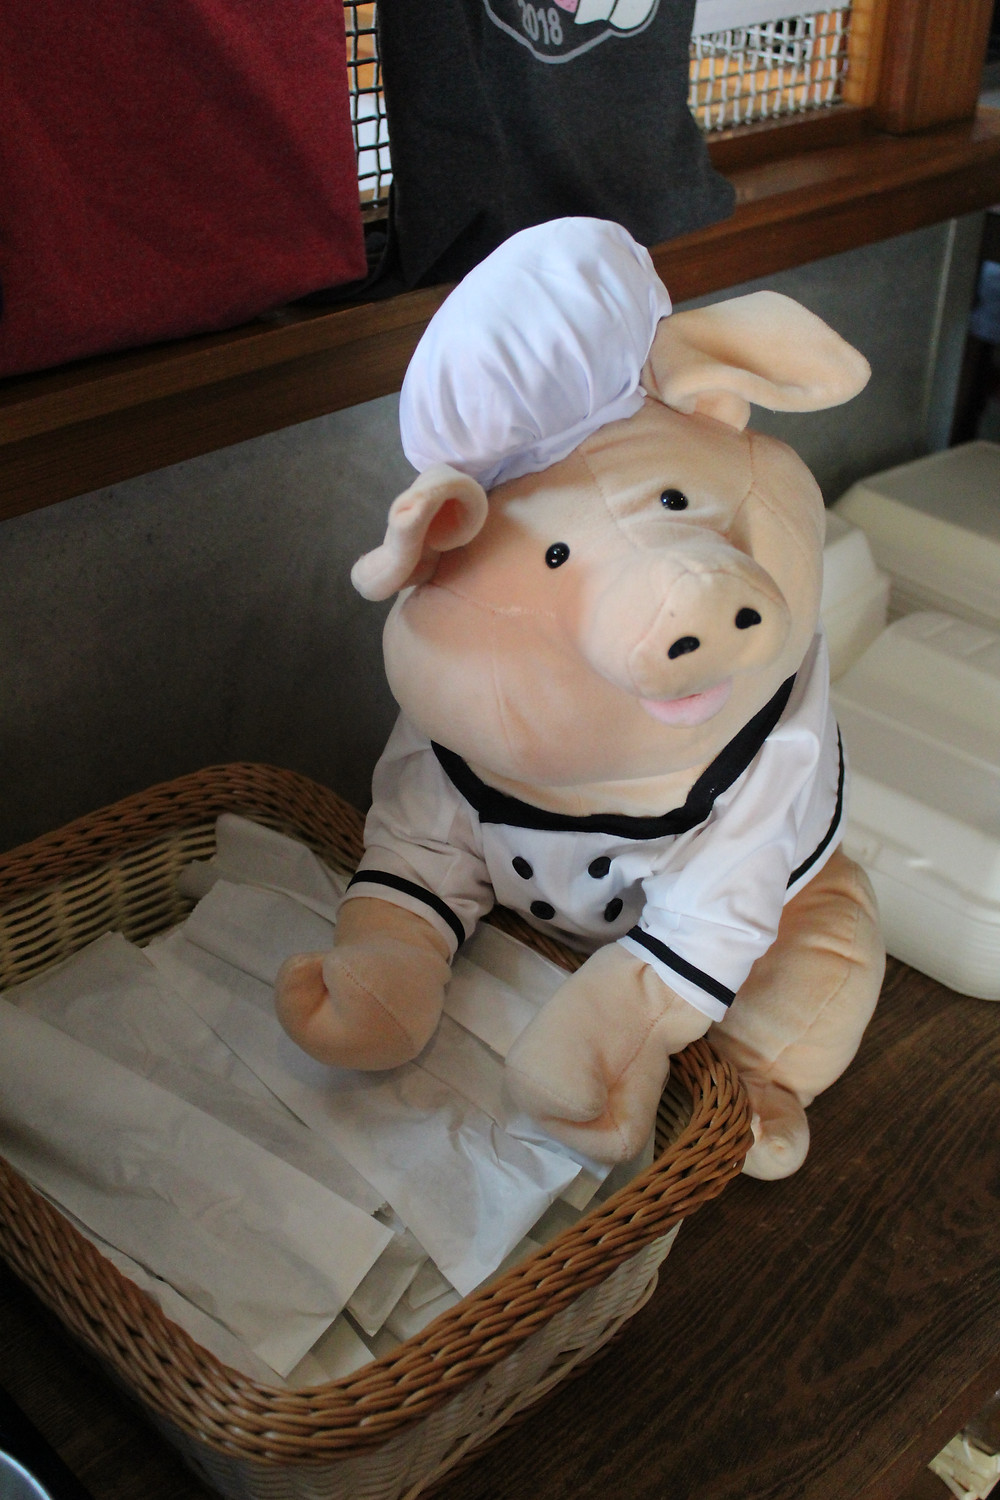 A stuffed pig posed next to wrapped silverware